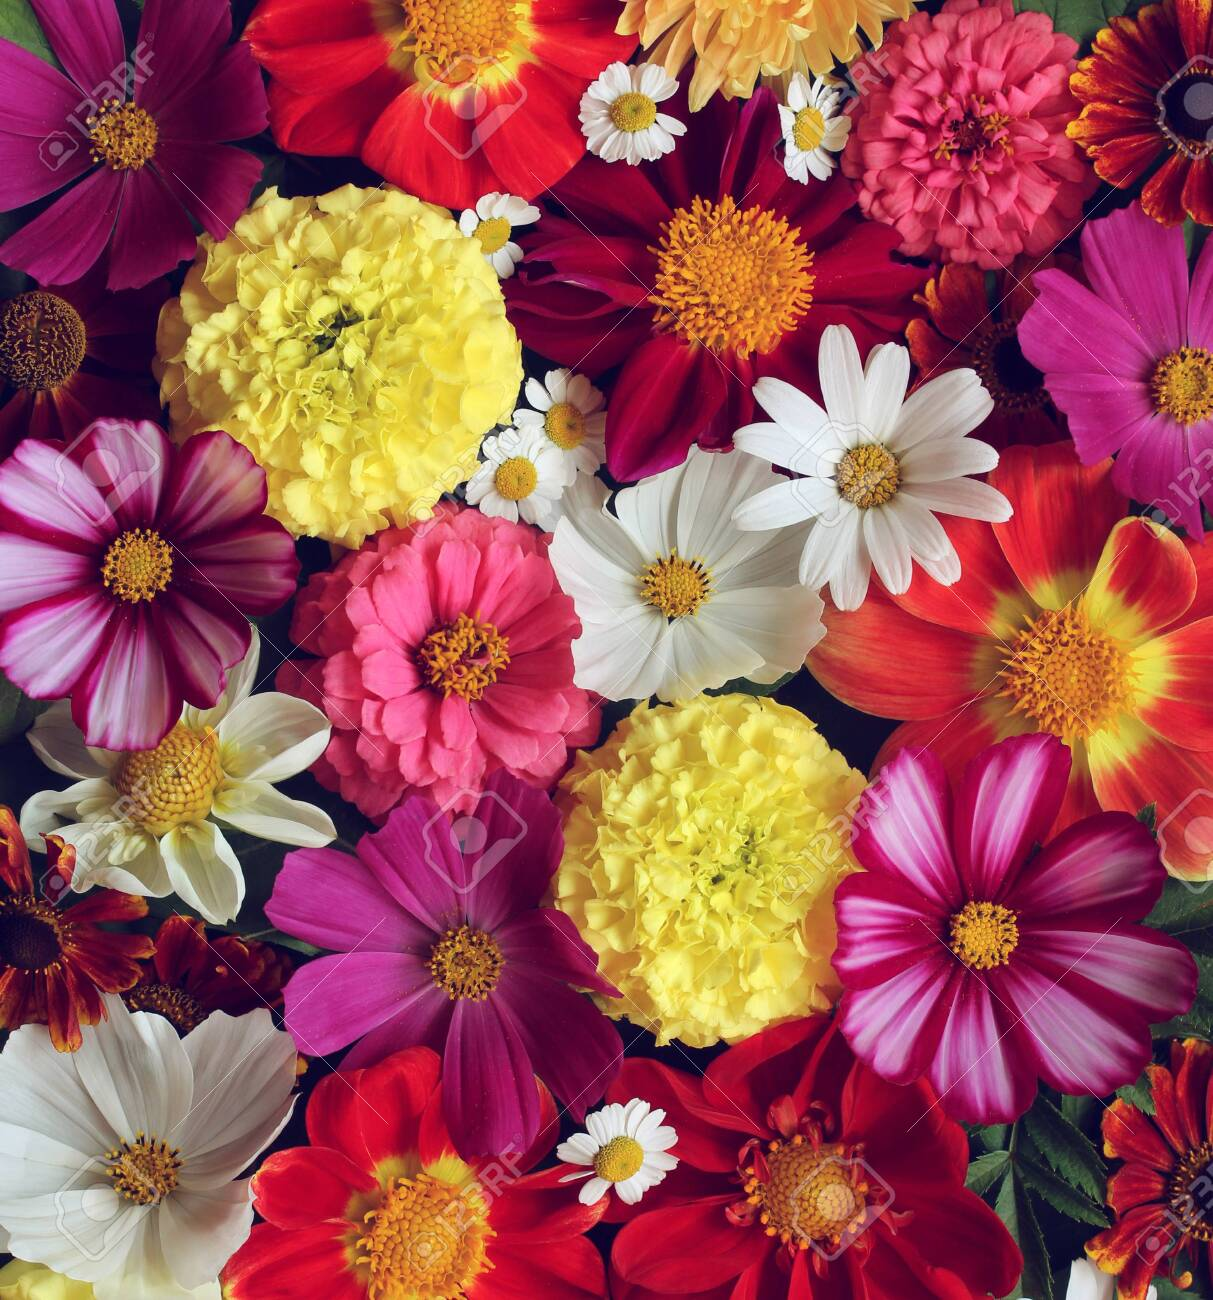 floral background, top view. garden flowers. flat lay. bright natural backdrop. - 139332688